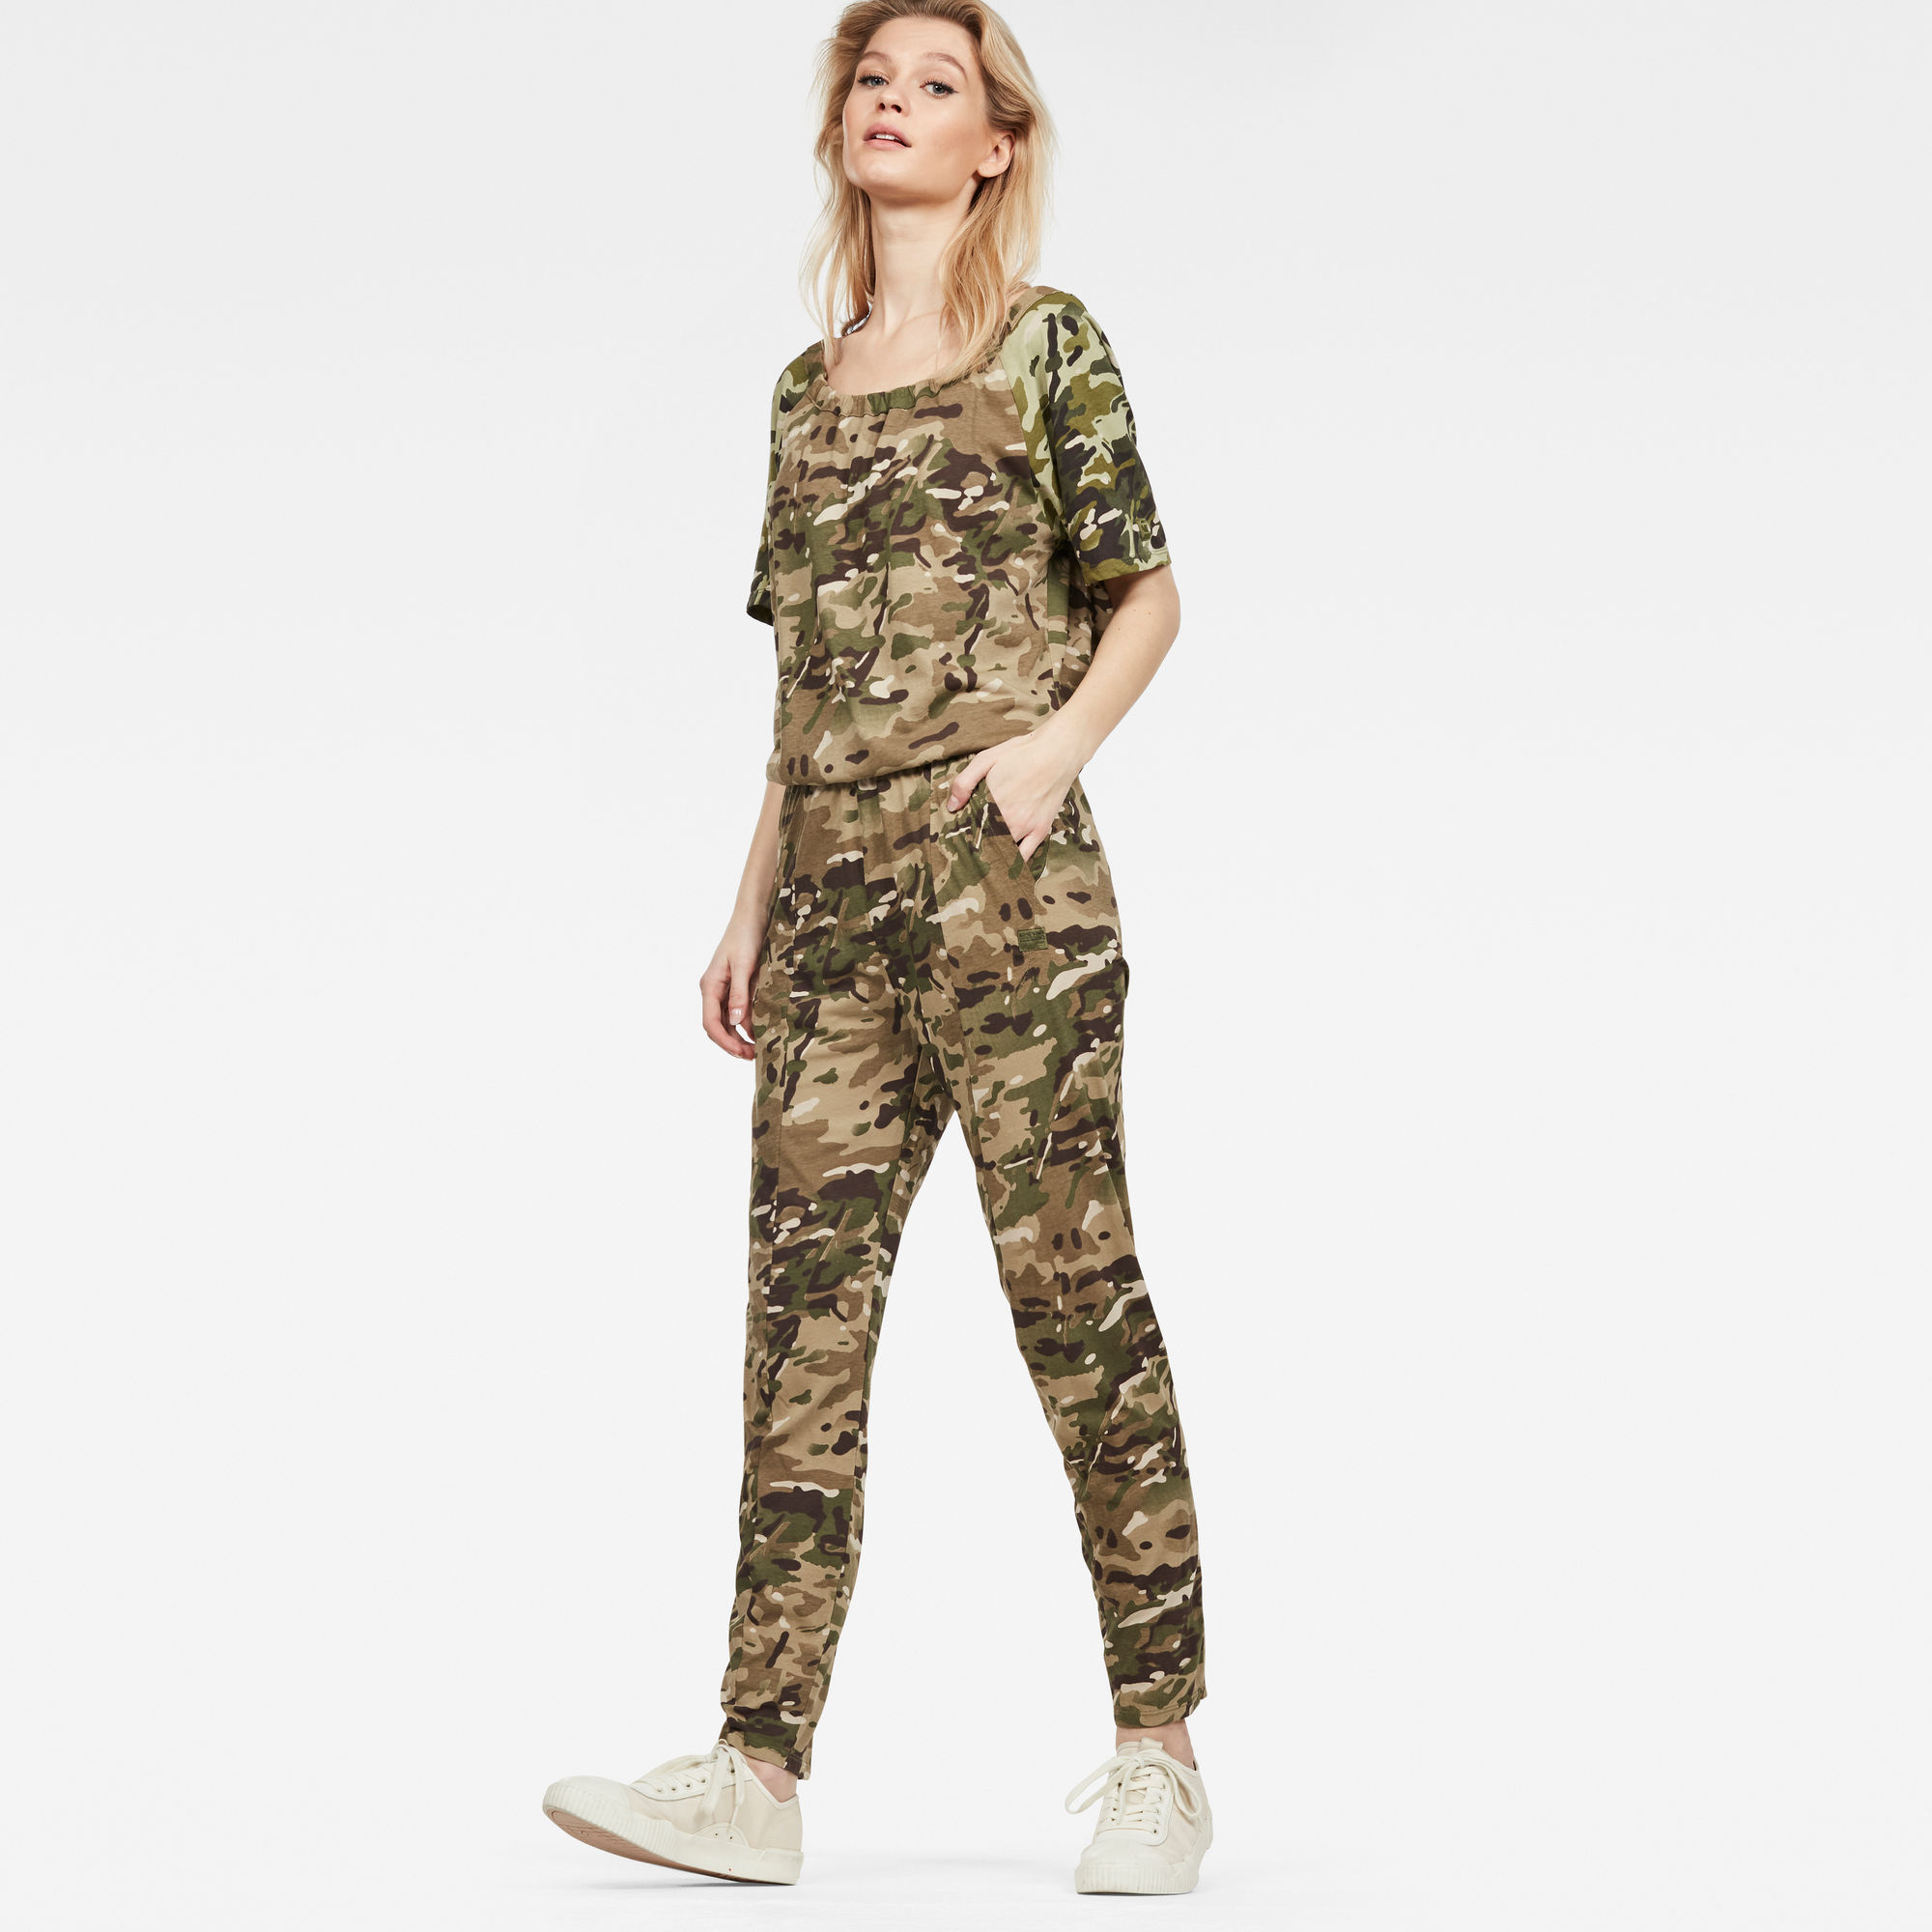 G-Star RAW Namic Jumpsuit